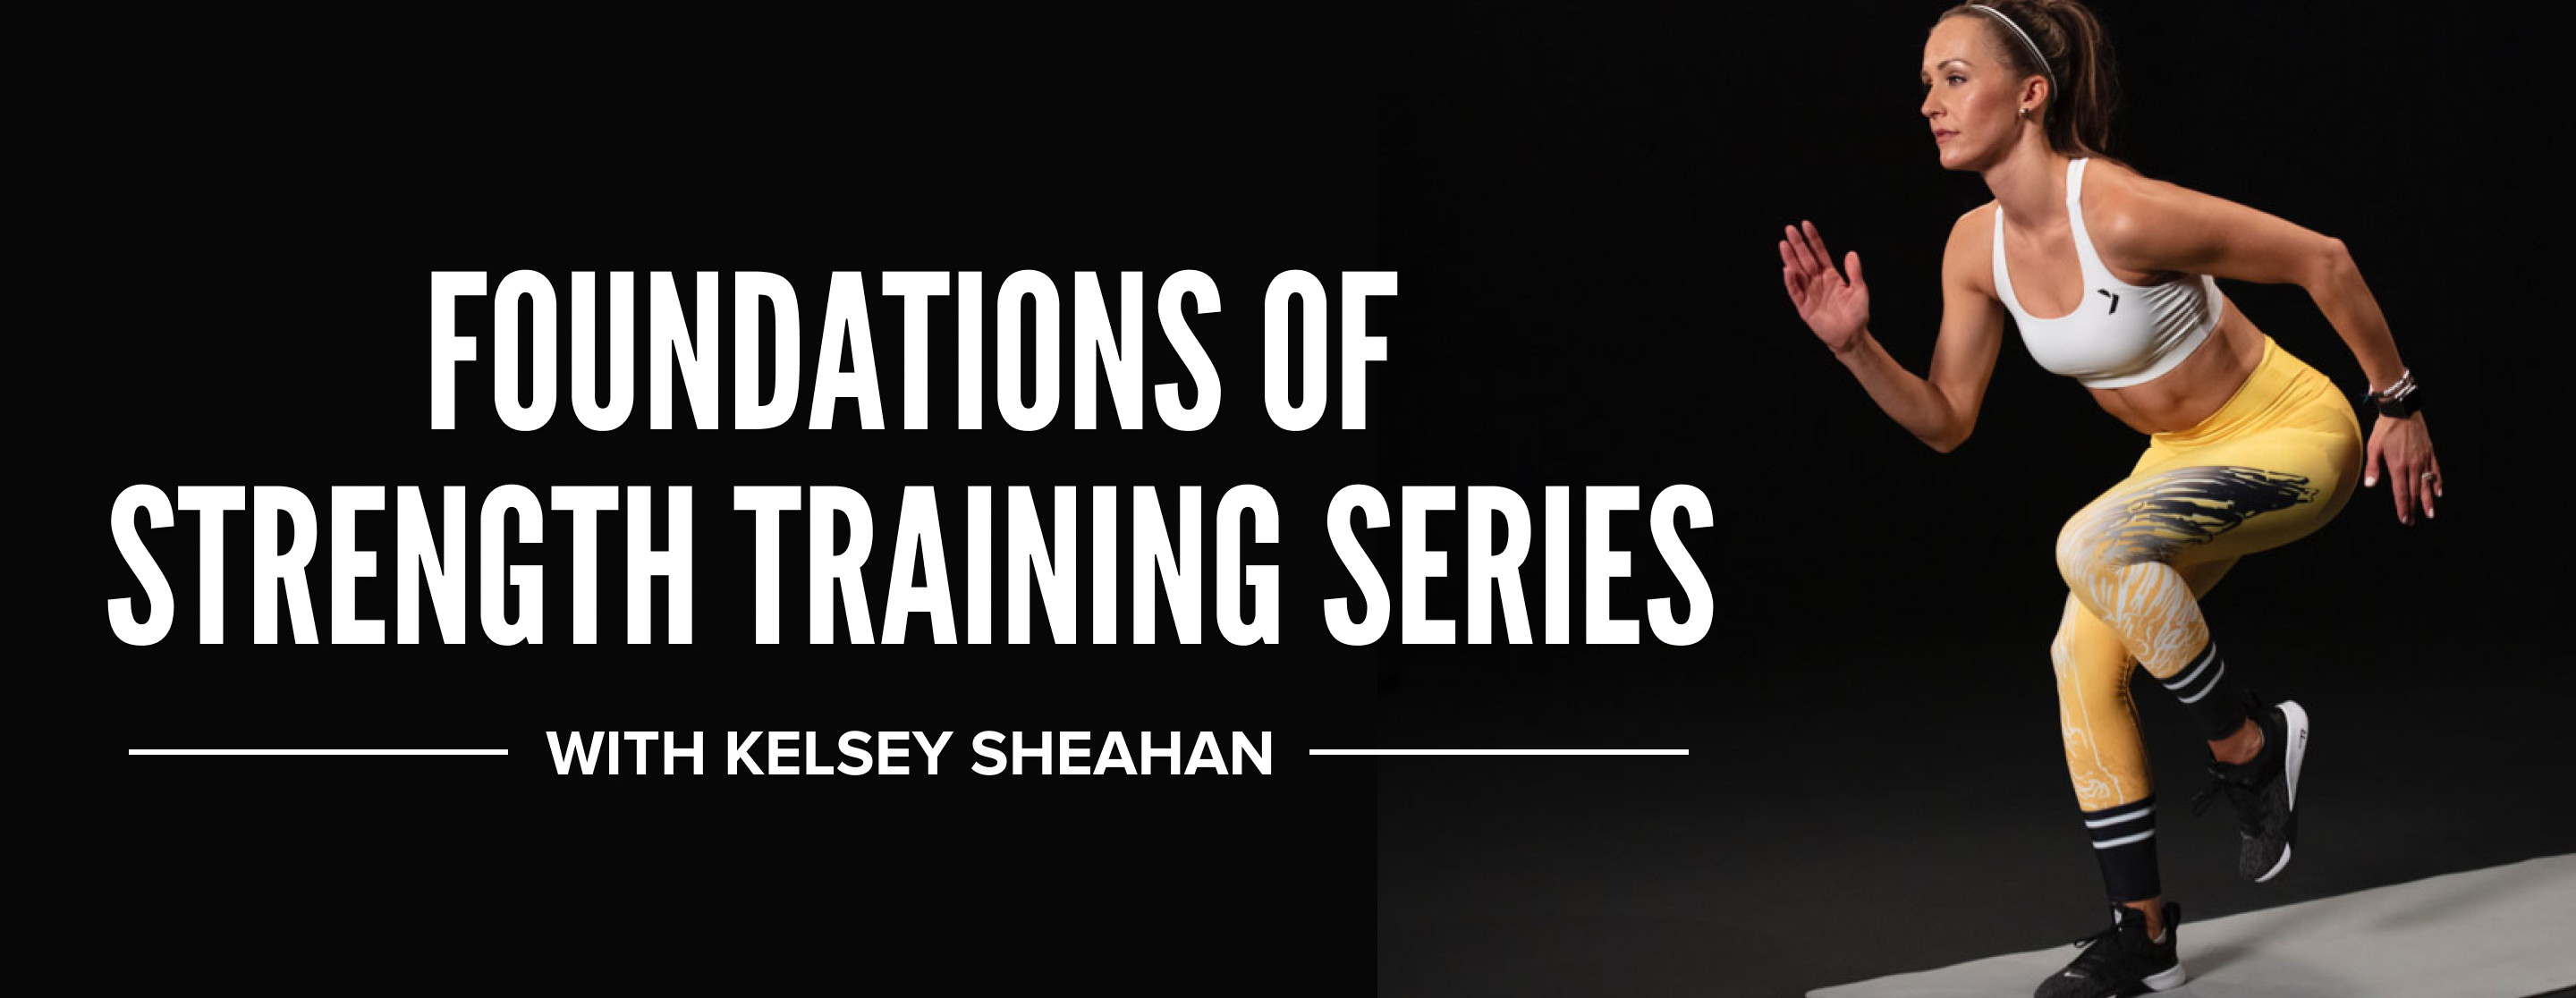 Foundations of Strength Training Series with iFit Trainer Kelsey Sheahan